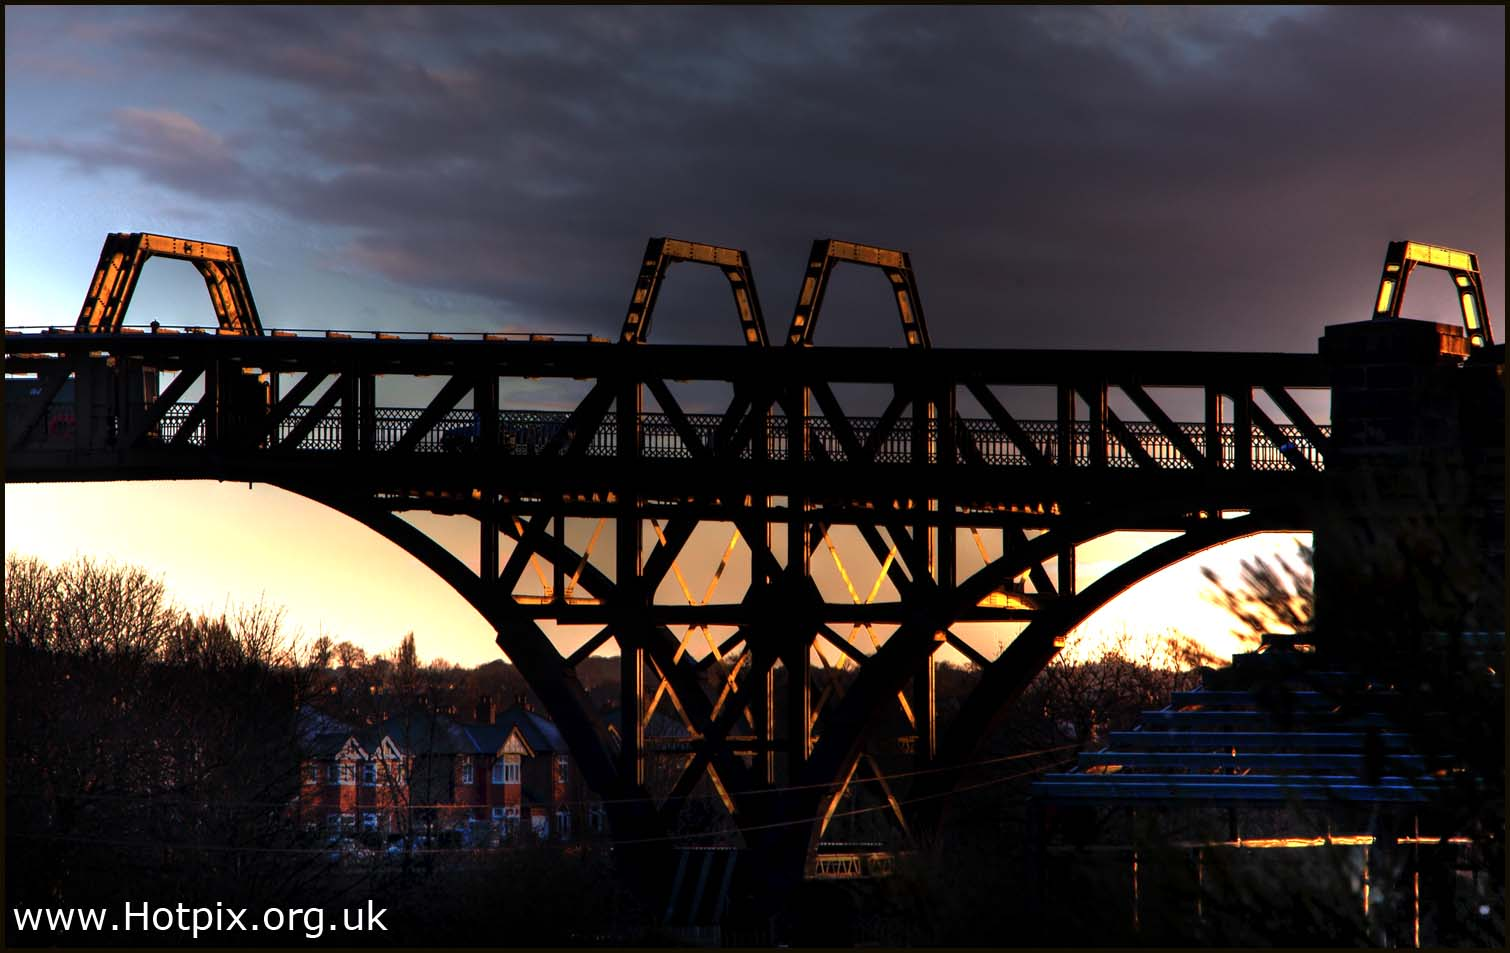 cantilever,cantelever,bridge,iron,steel,MSCC,manchester,ship,can cantilever,canal,company,warrington,latchford,sunset,rain,wet,hdr,blue,sky,crossing,tilting,magic,hour,girders,steelwork,engineering,industrial,archology,tonysmith,hotpix,hotpixuk,tony,smith,Hotpicks,hotpics,hot,pics,pix,picks,highway,road,old,stuff,noche,nuit,sex,sexy